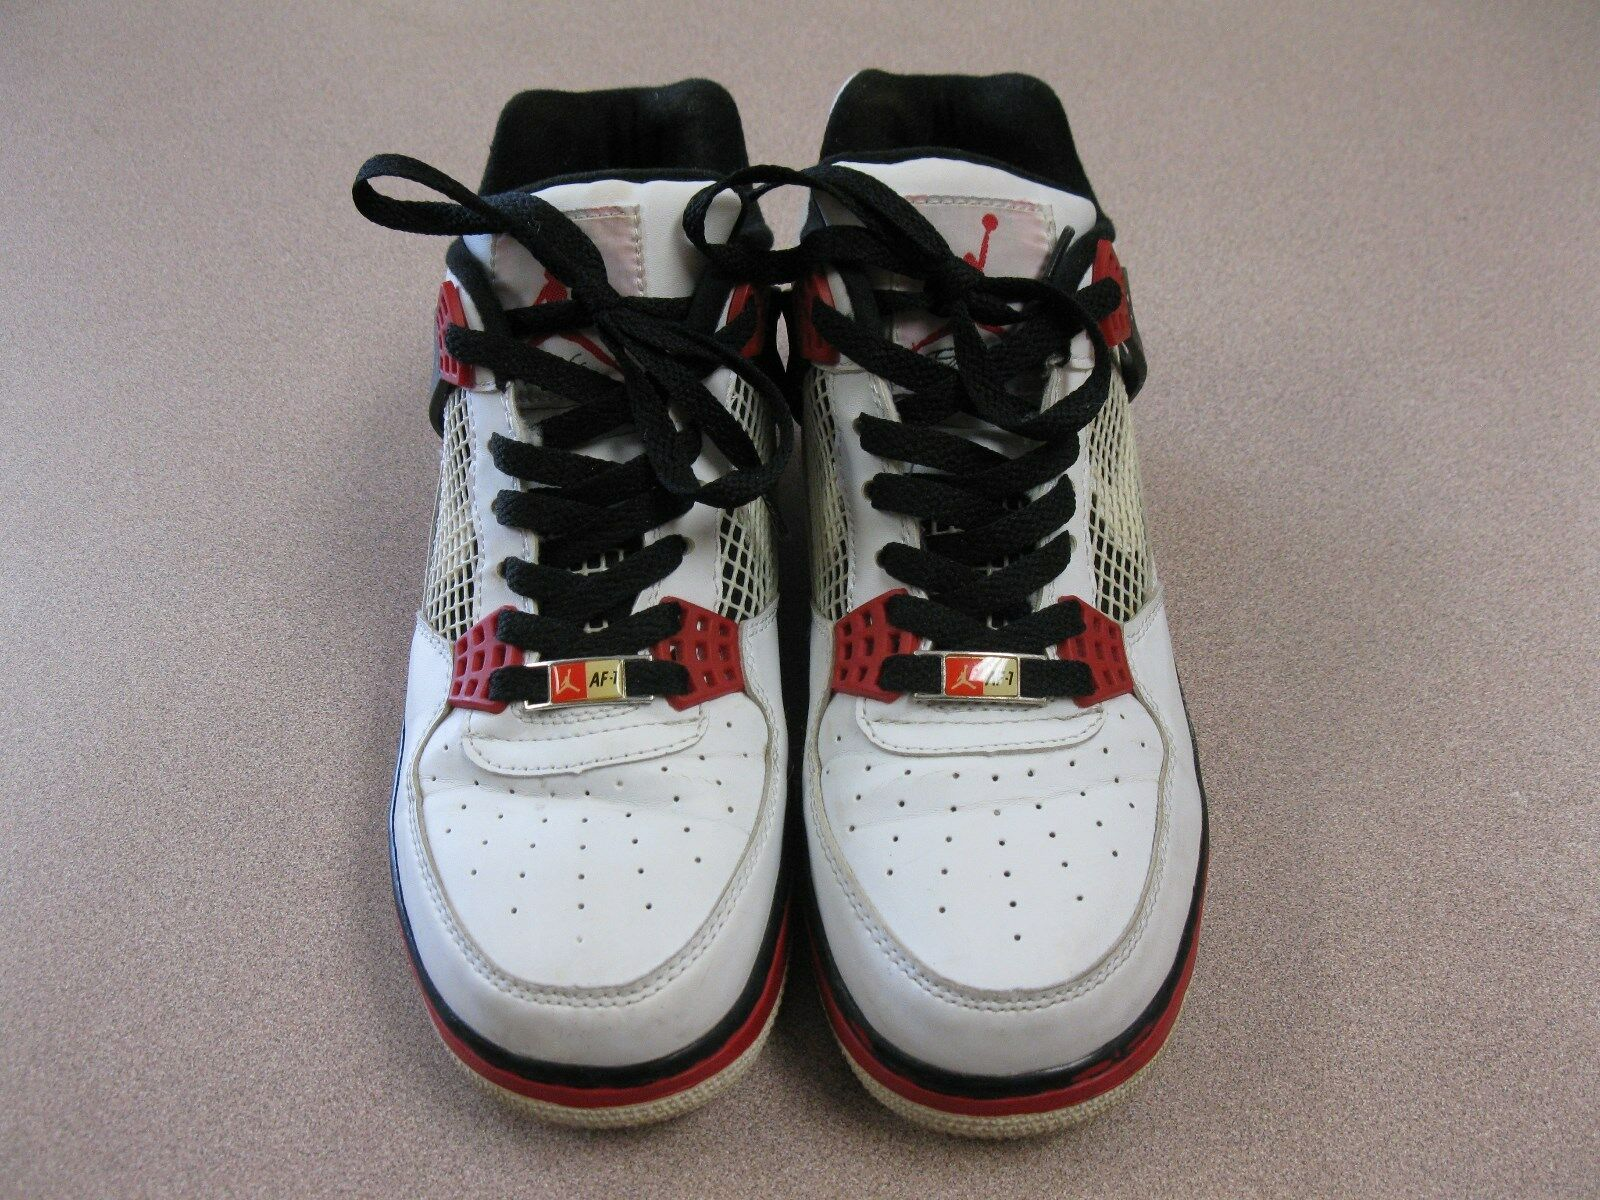 NIKE AIR JORDAN AJF 4 WHITE VARSITY RED BLACK SIZE 7 - 364342 161